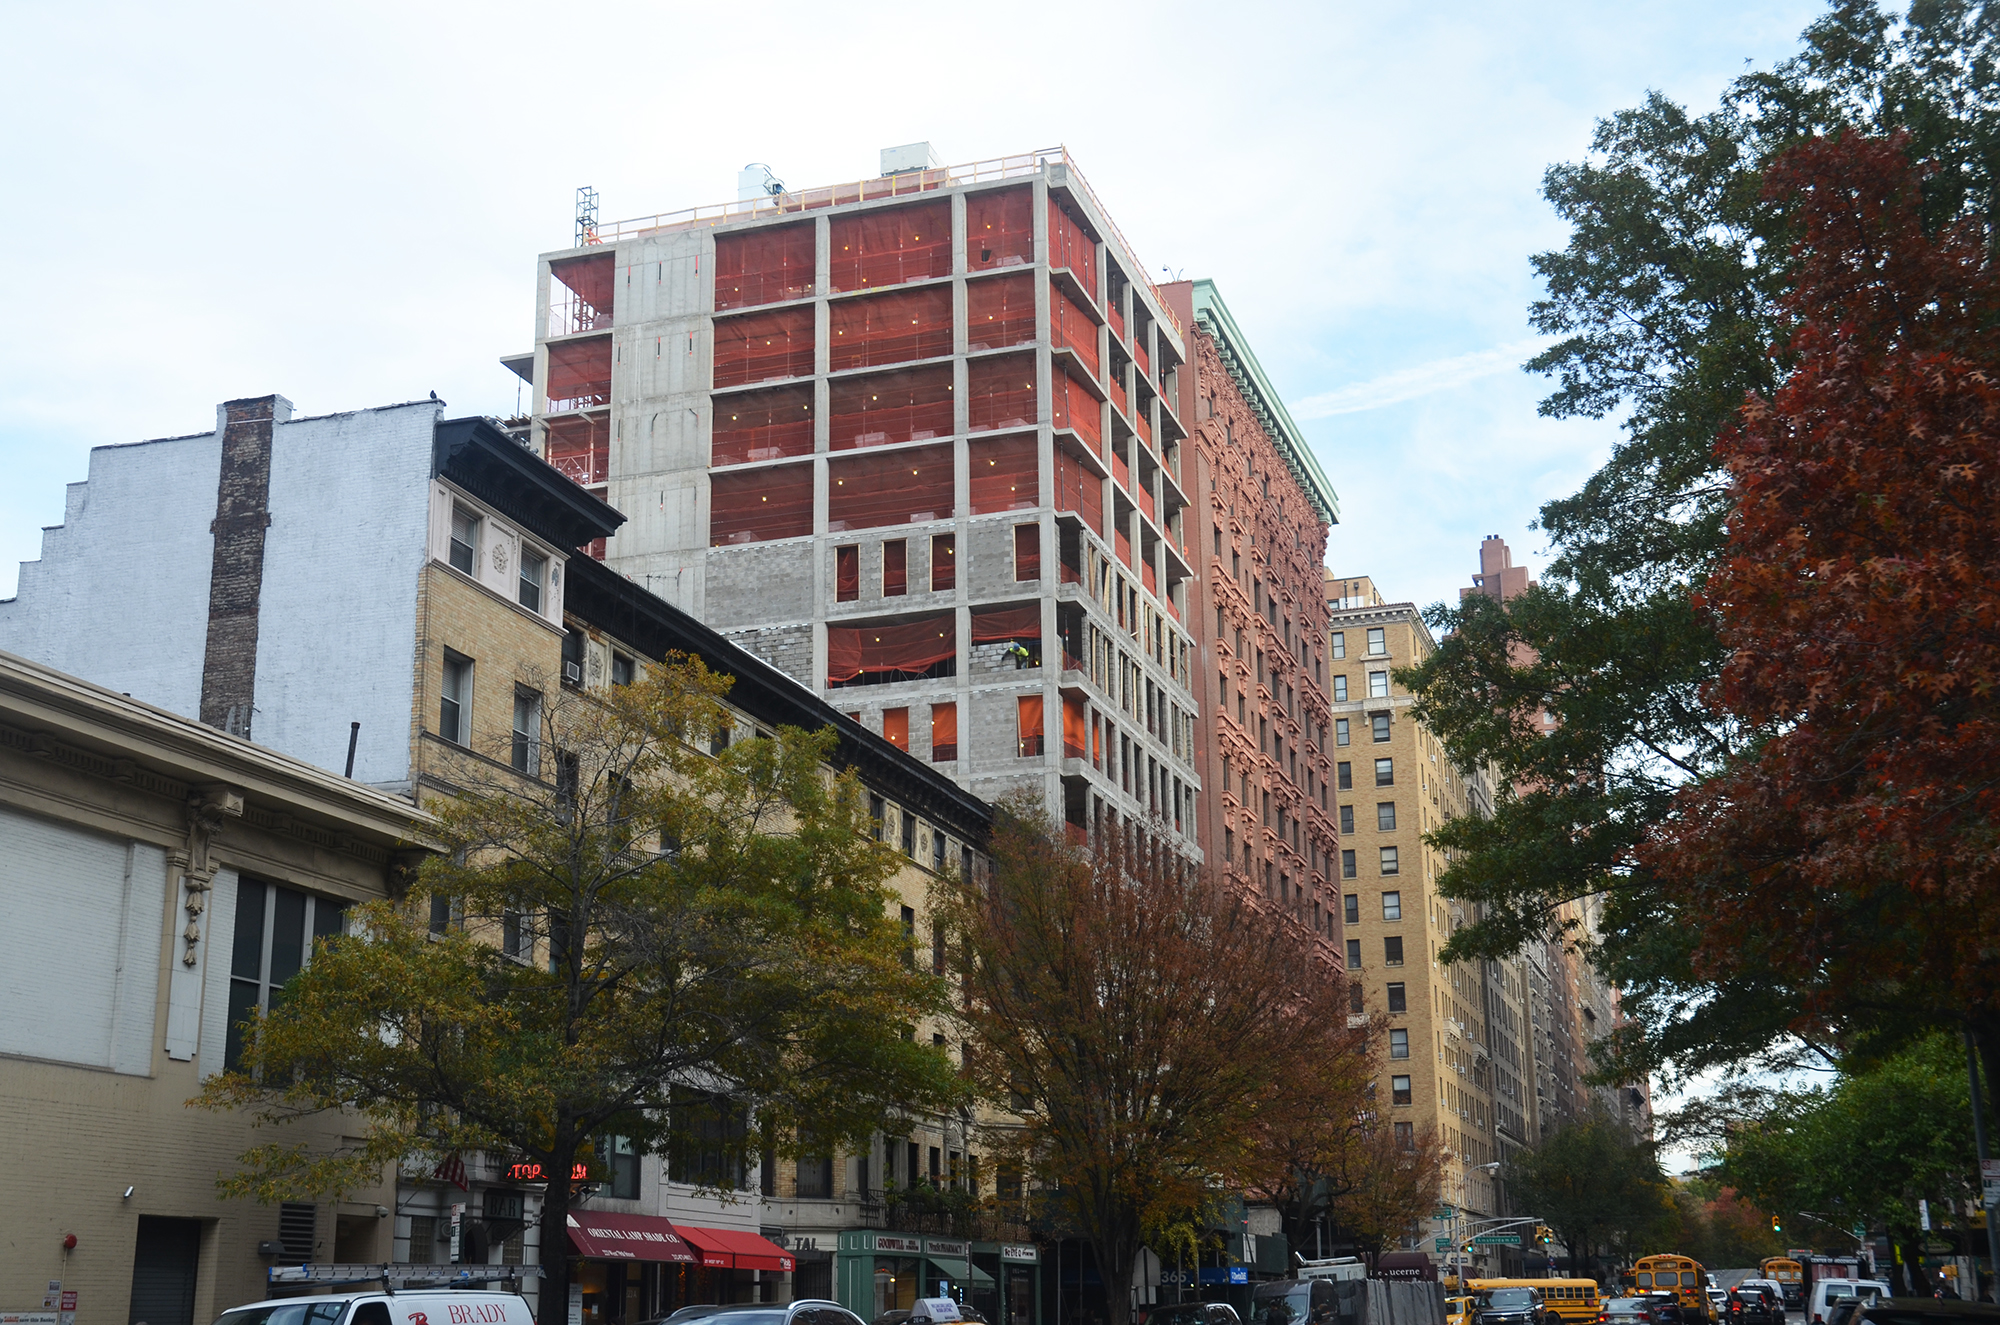 207W79 as seen from the west